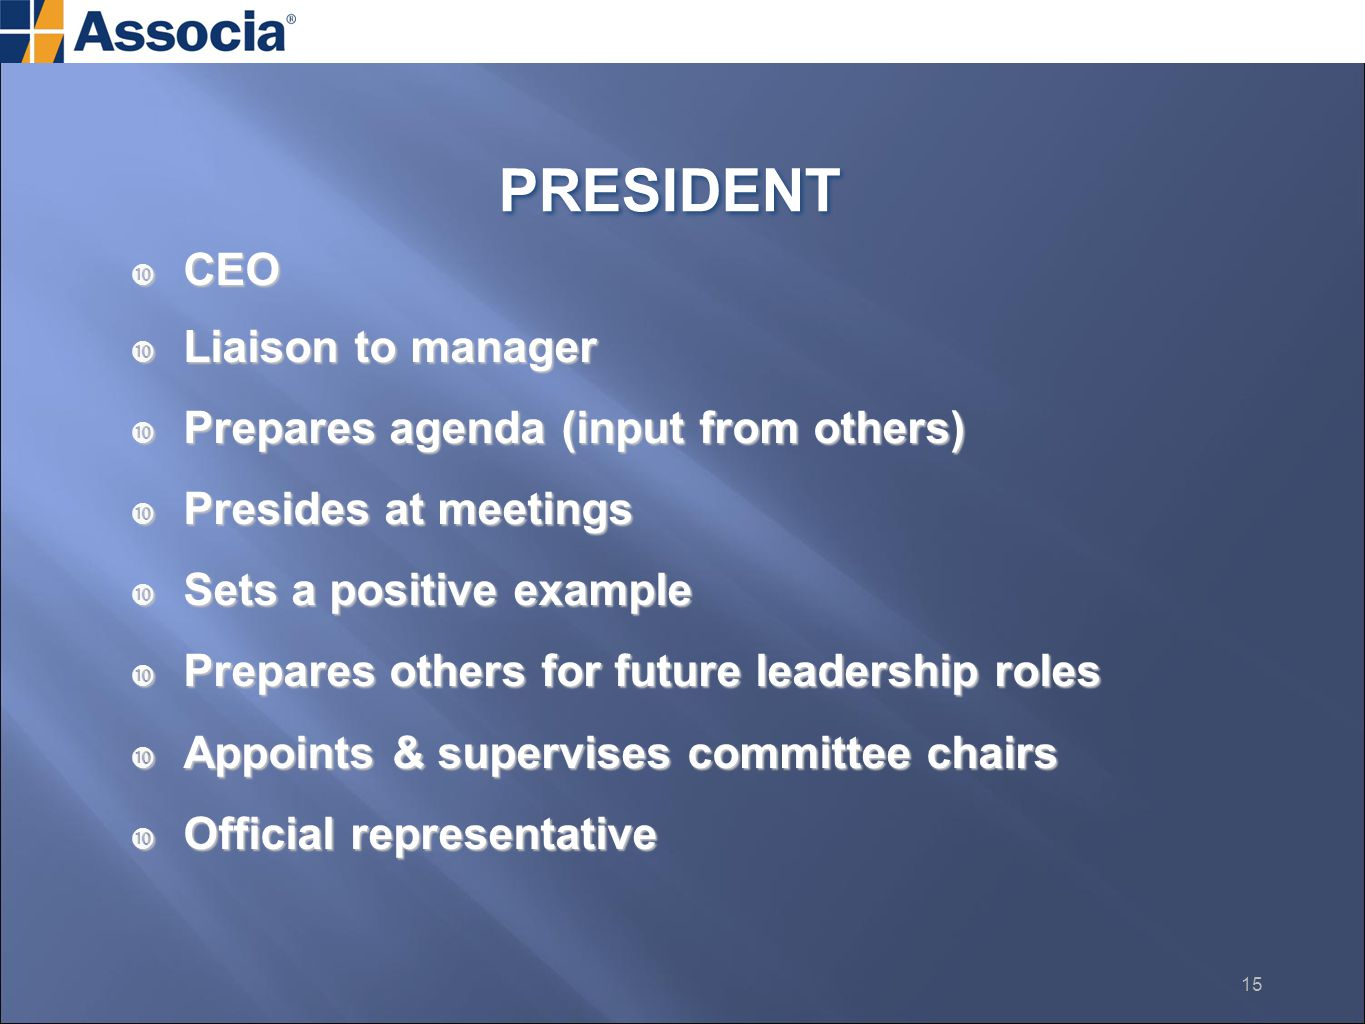  CEO  Liaison to manager  Prepares agenda (input from others)  Presides at meetings  Sets a positive example  Prepares others for future leadership roles  Appoints & supervises committee chairs  Official representative PRESIDENT 15